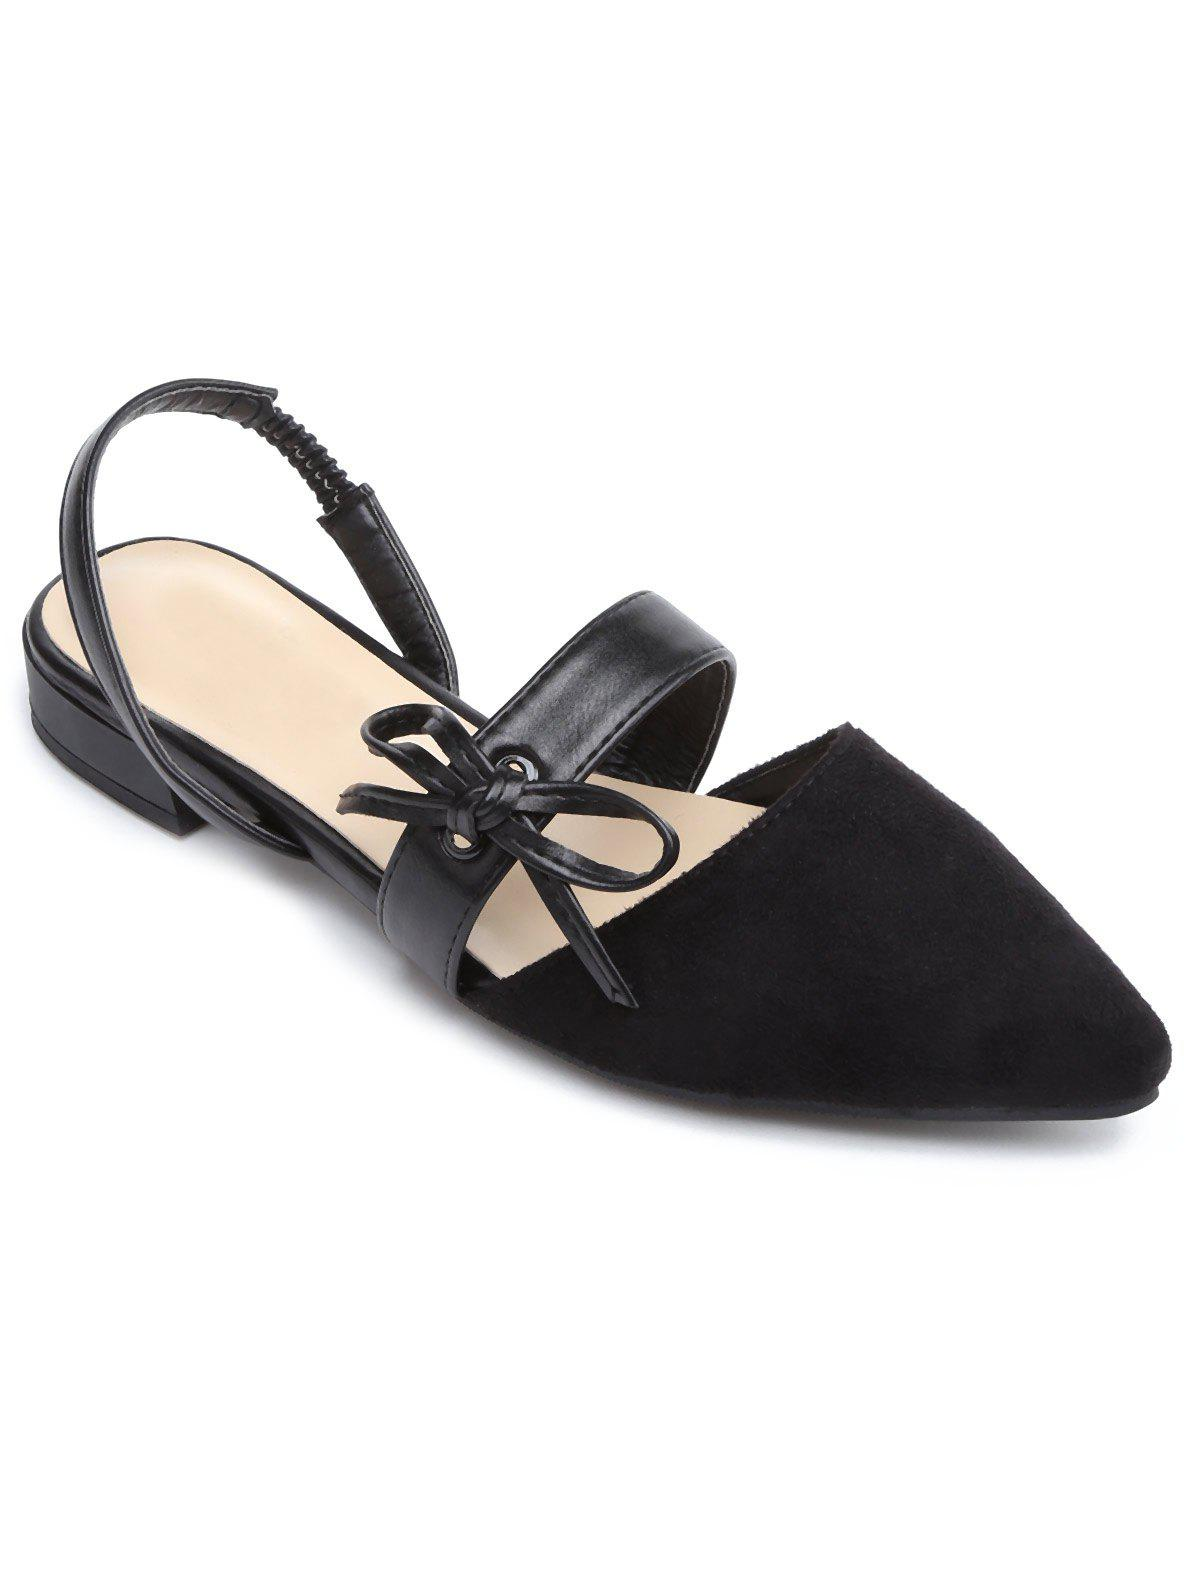 2018 Bow Point Toe Slingbacks Flat Shoes Flatshoes Cheap